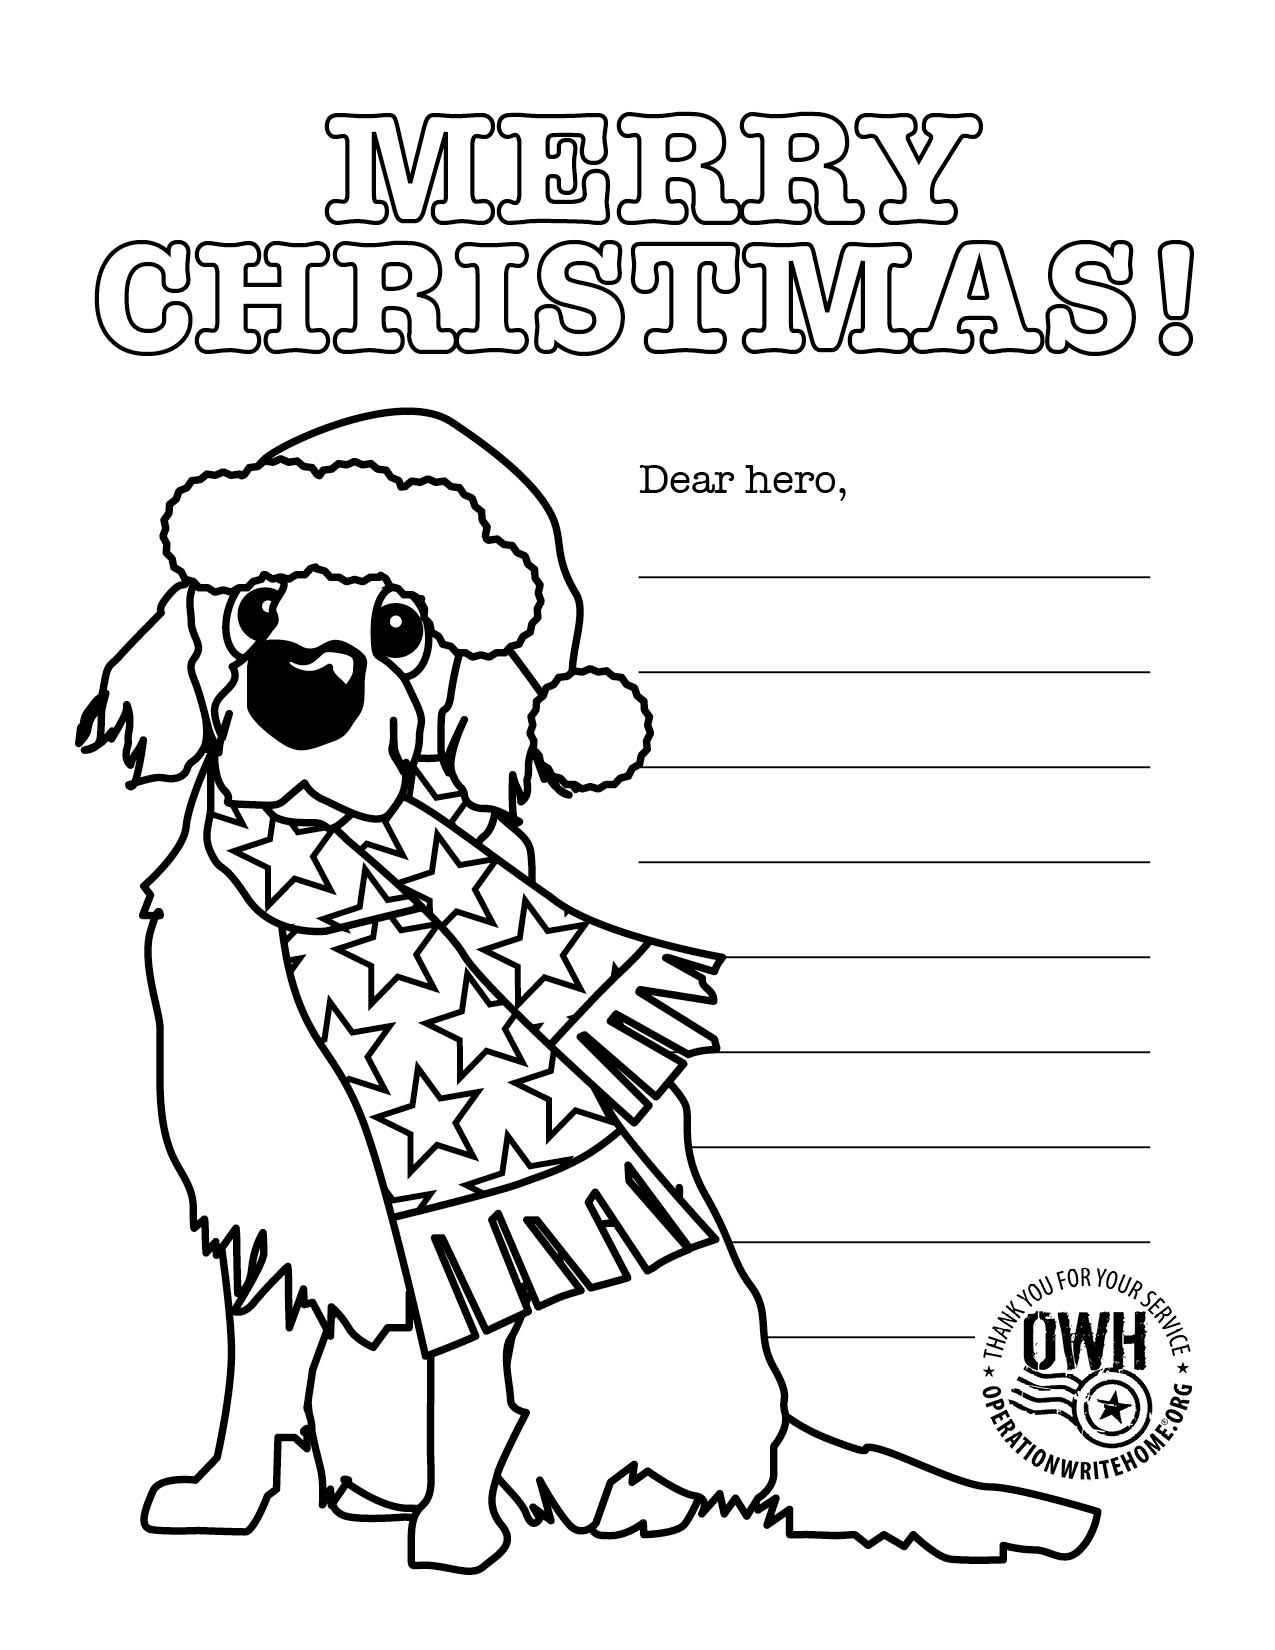 Coloring Pages Operation Write Home Kids Christmas Coloring Pages Christmas Coloring Pages Free Printable Christmas Cards